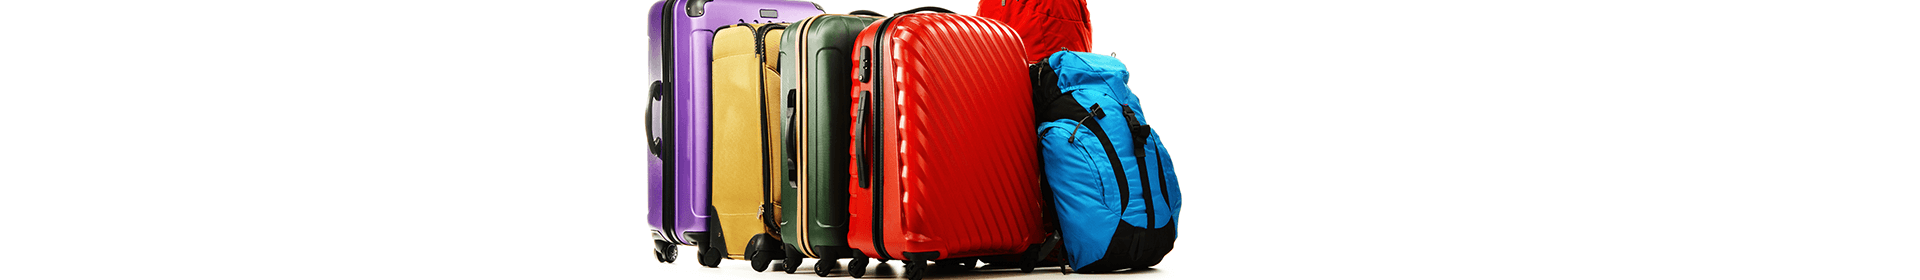 International Airline Baggage Allowance, Checked Baggage